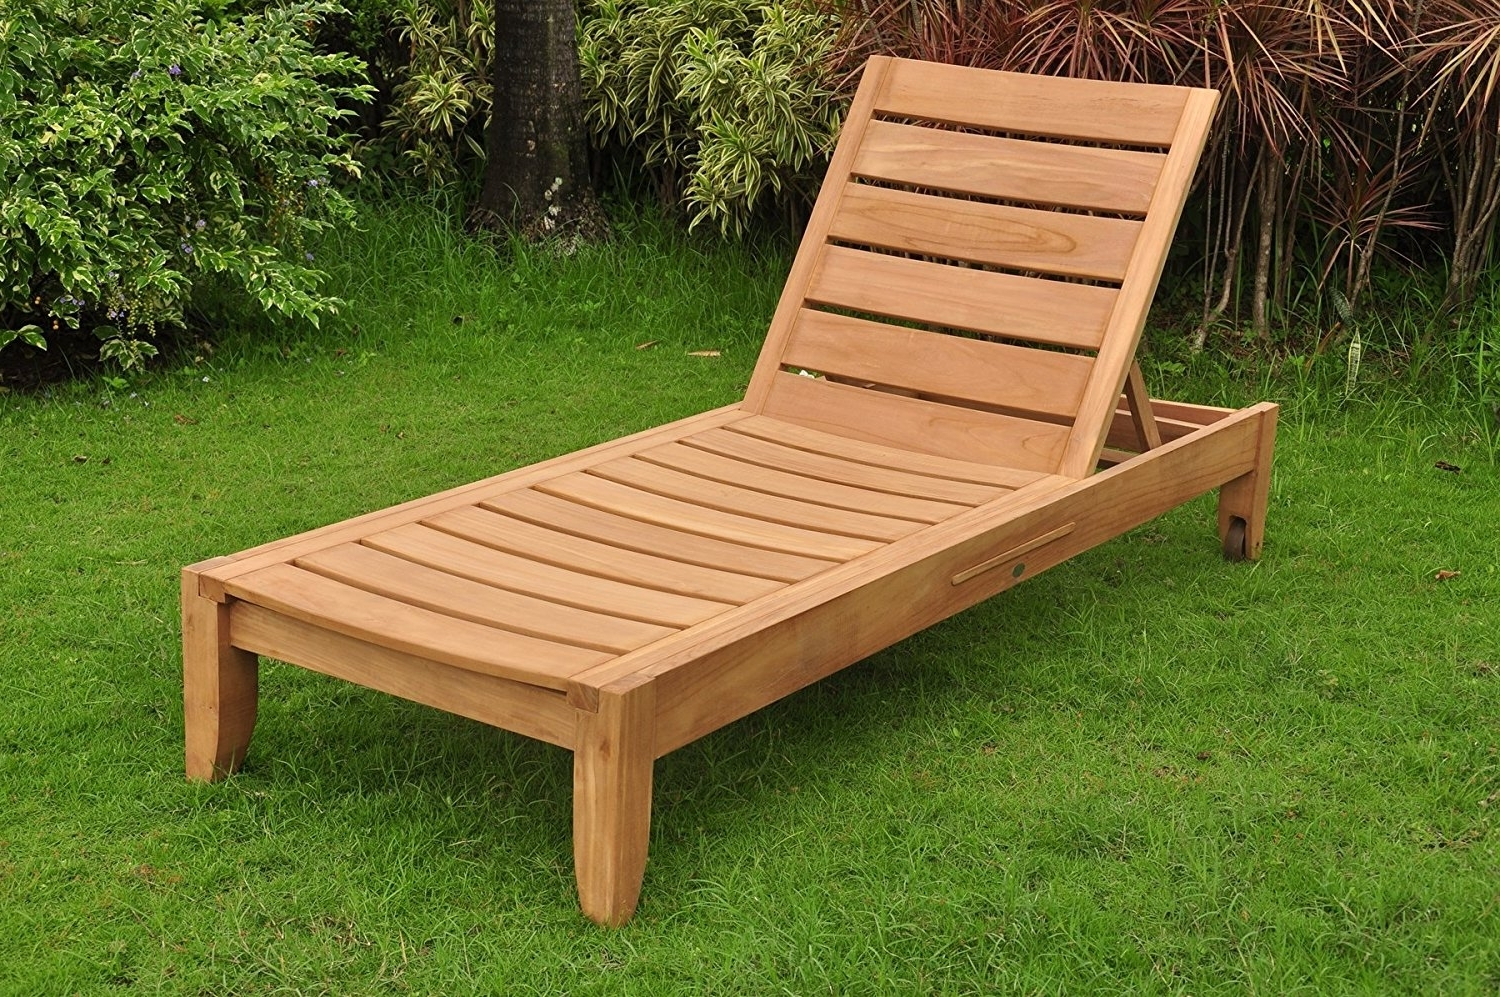 Amazon : New Grade A Teak Multi Position Sun Chaise Lounger Intended For Recent Teak Chaise Lounges (View 5 of 15)